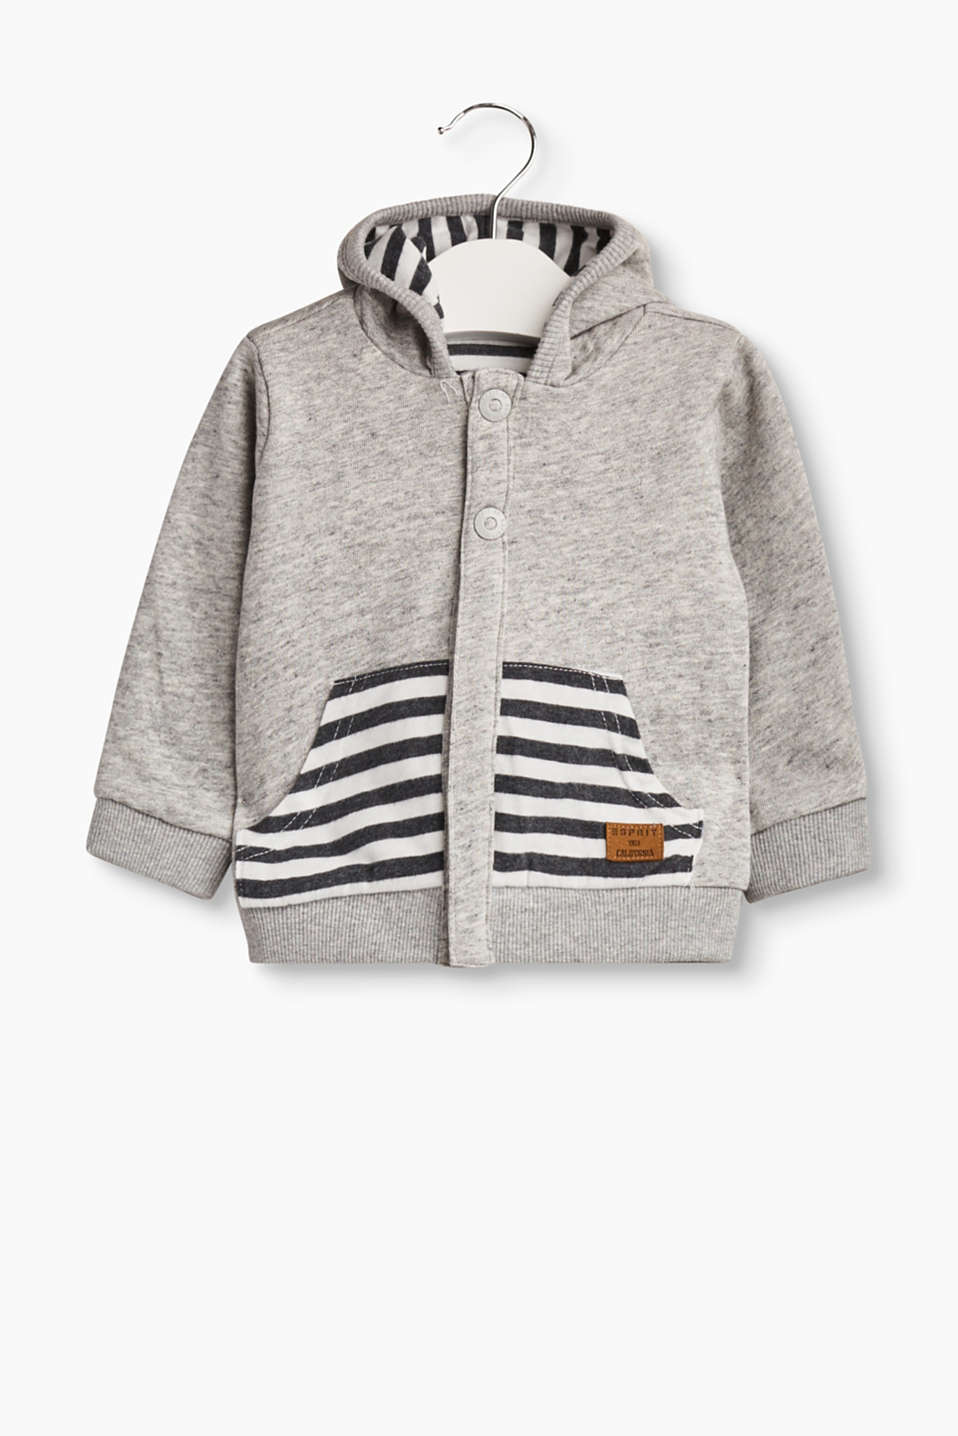 Subtle melange finish on one side, cool stripes on the other: hooded sweatshirt cardigan in 100% cotton